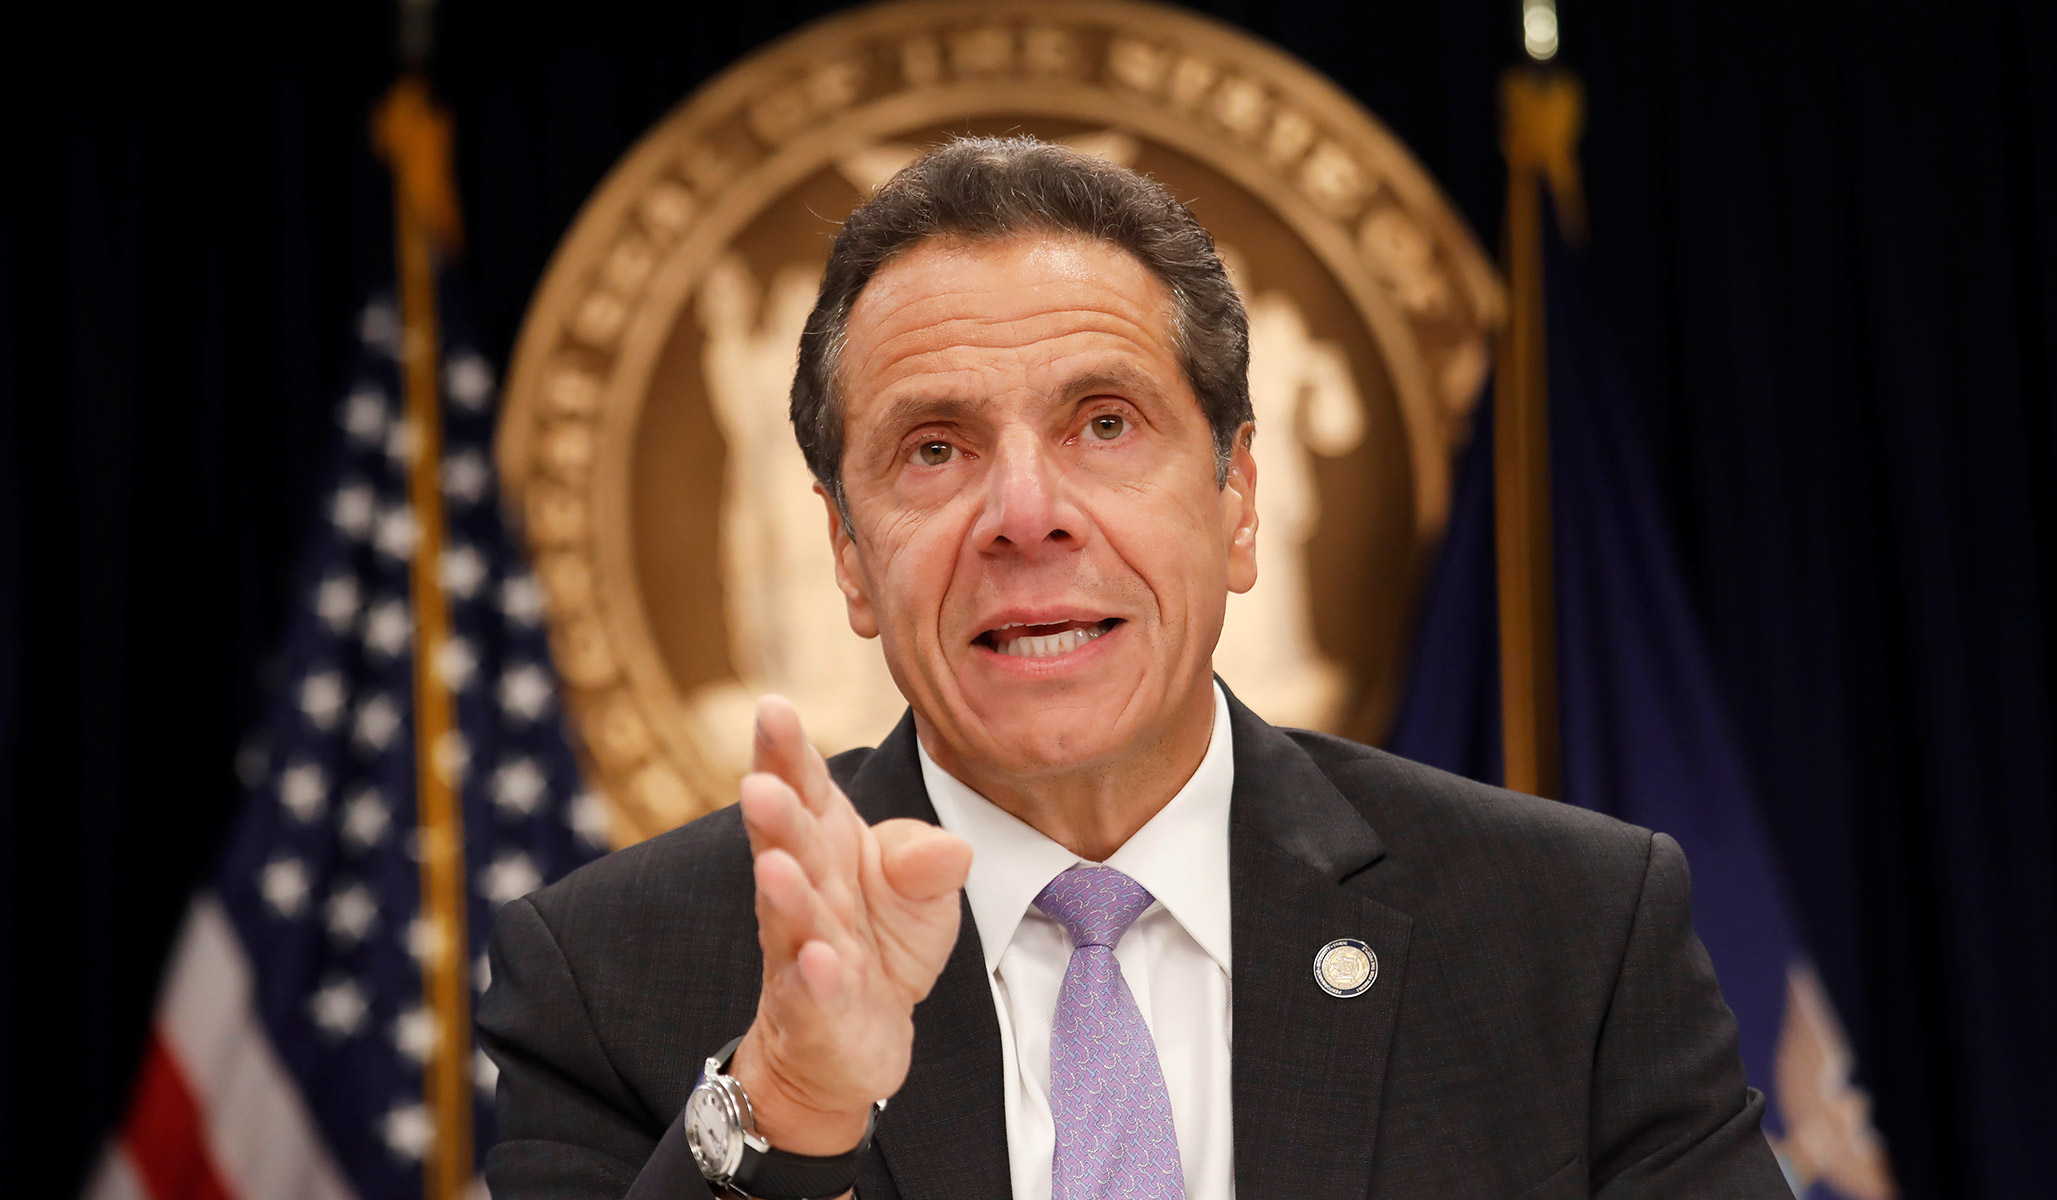 Cuomo Signs Measure Allowing New York Prosecutors to Bypass Presidential Pardons